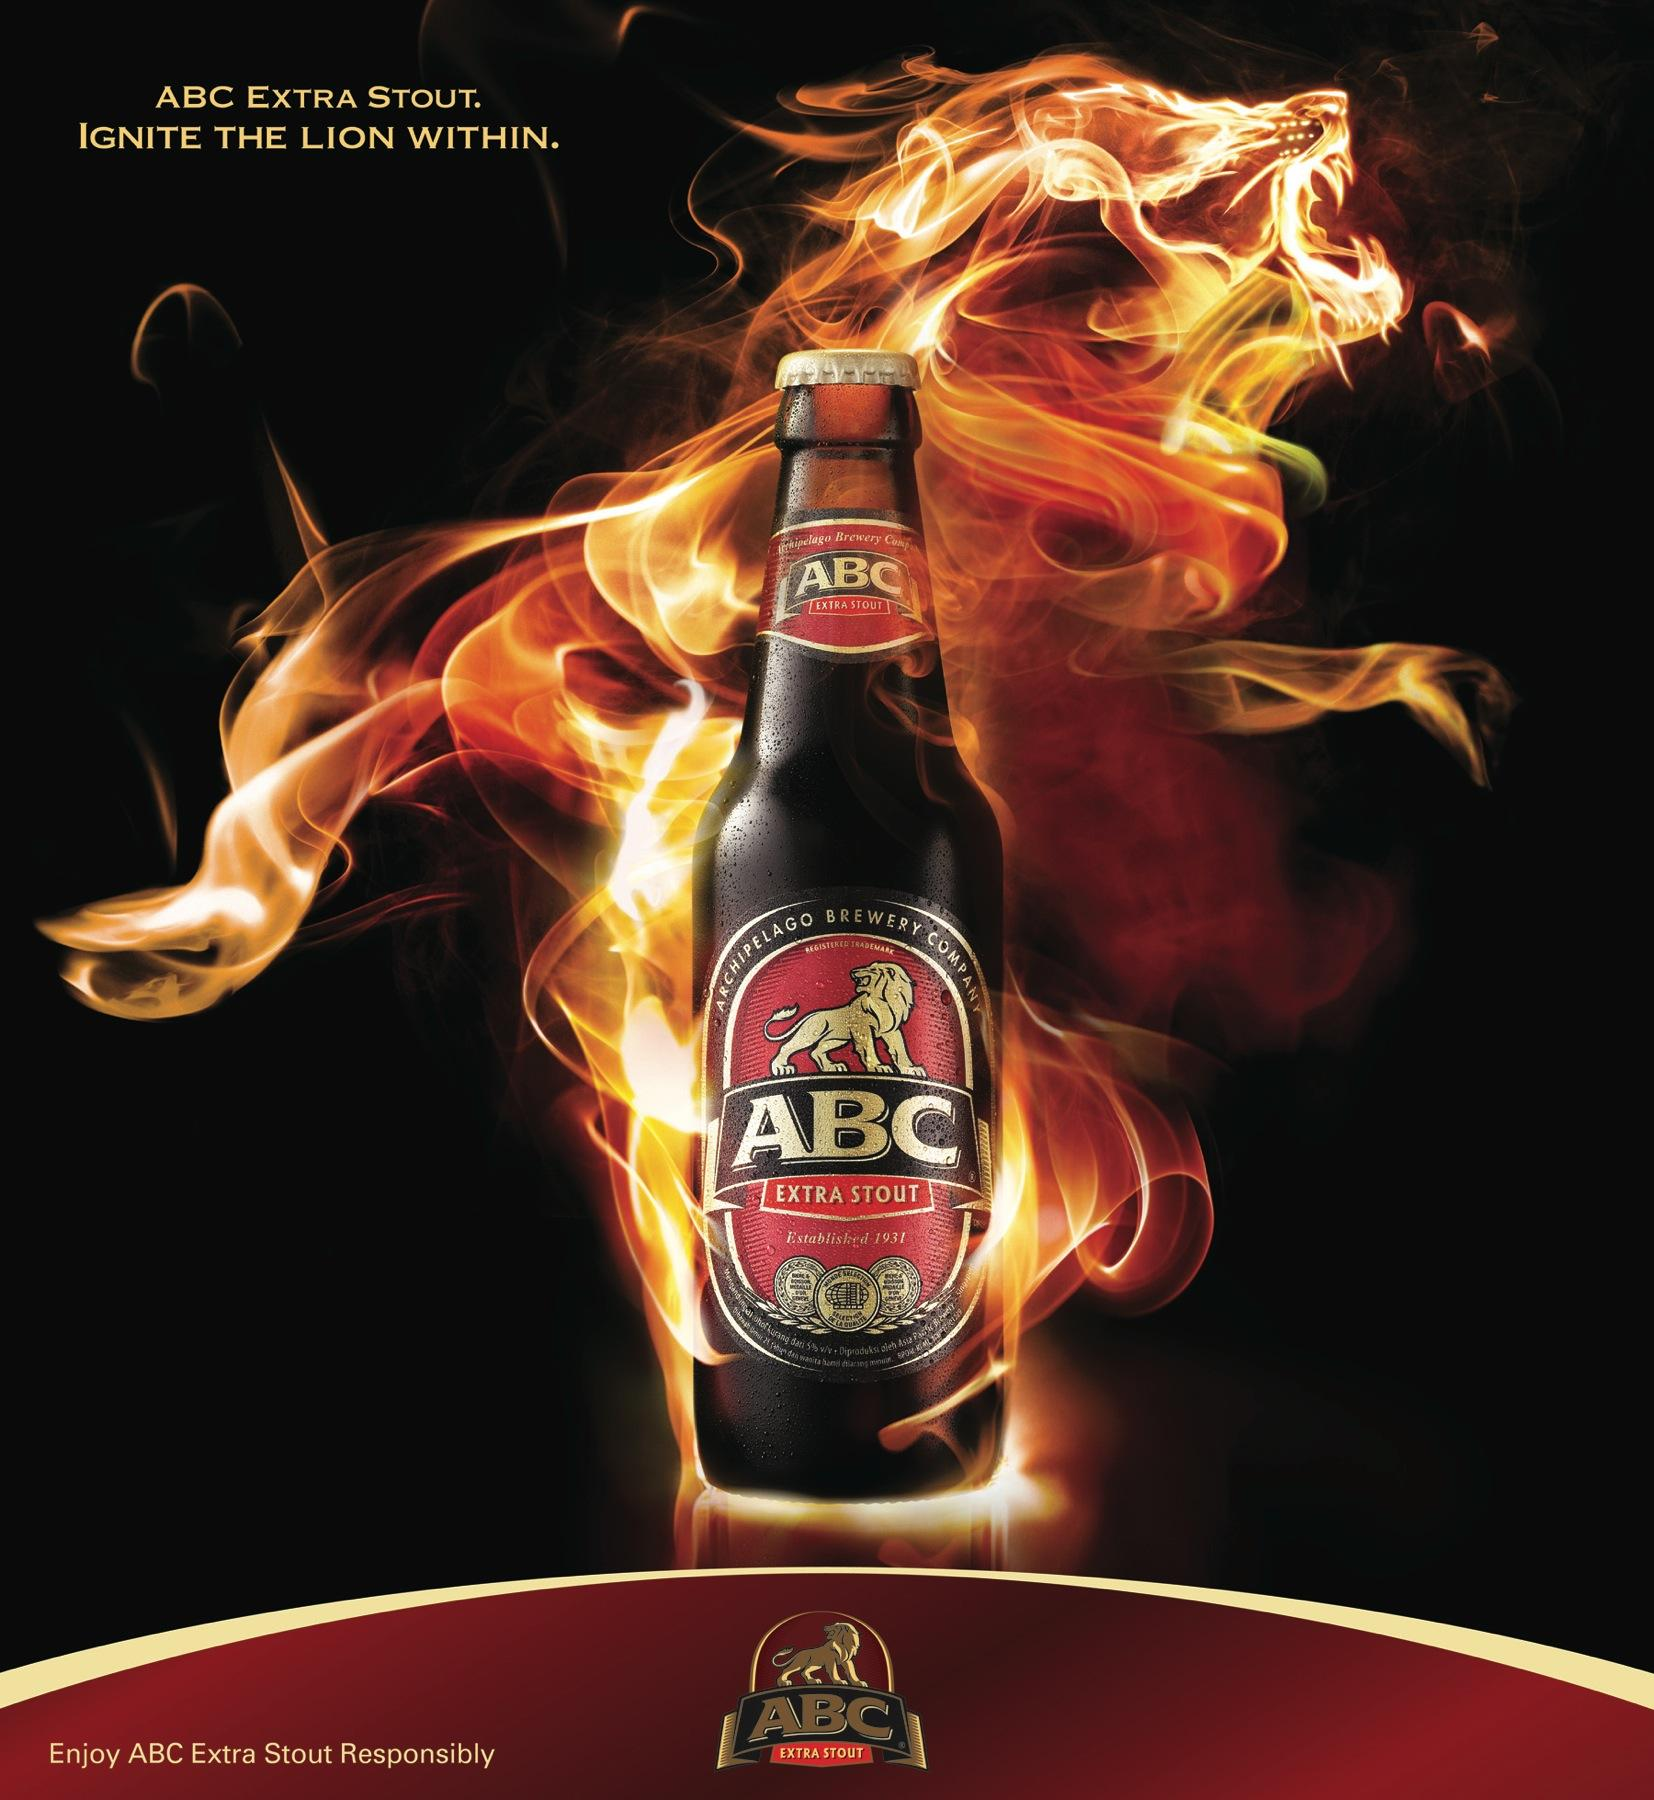 ABC Extra Stout Print Ad -  Ignite